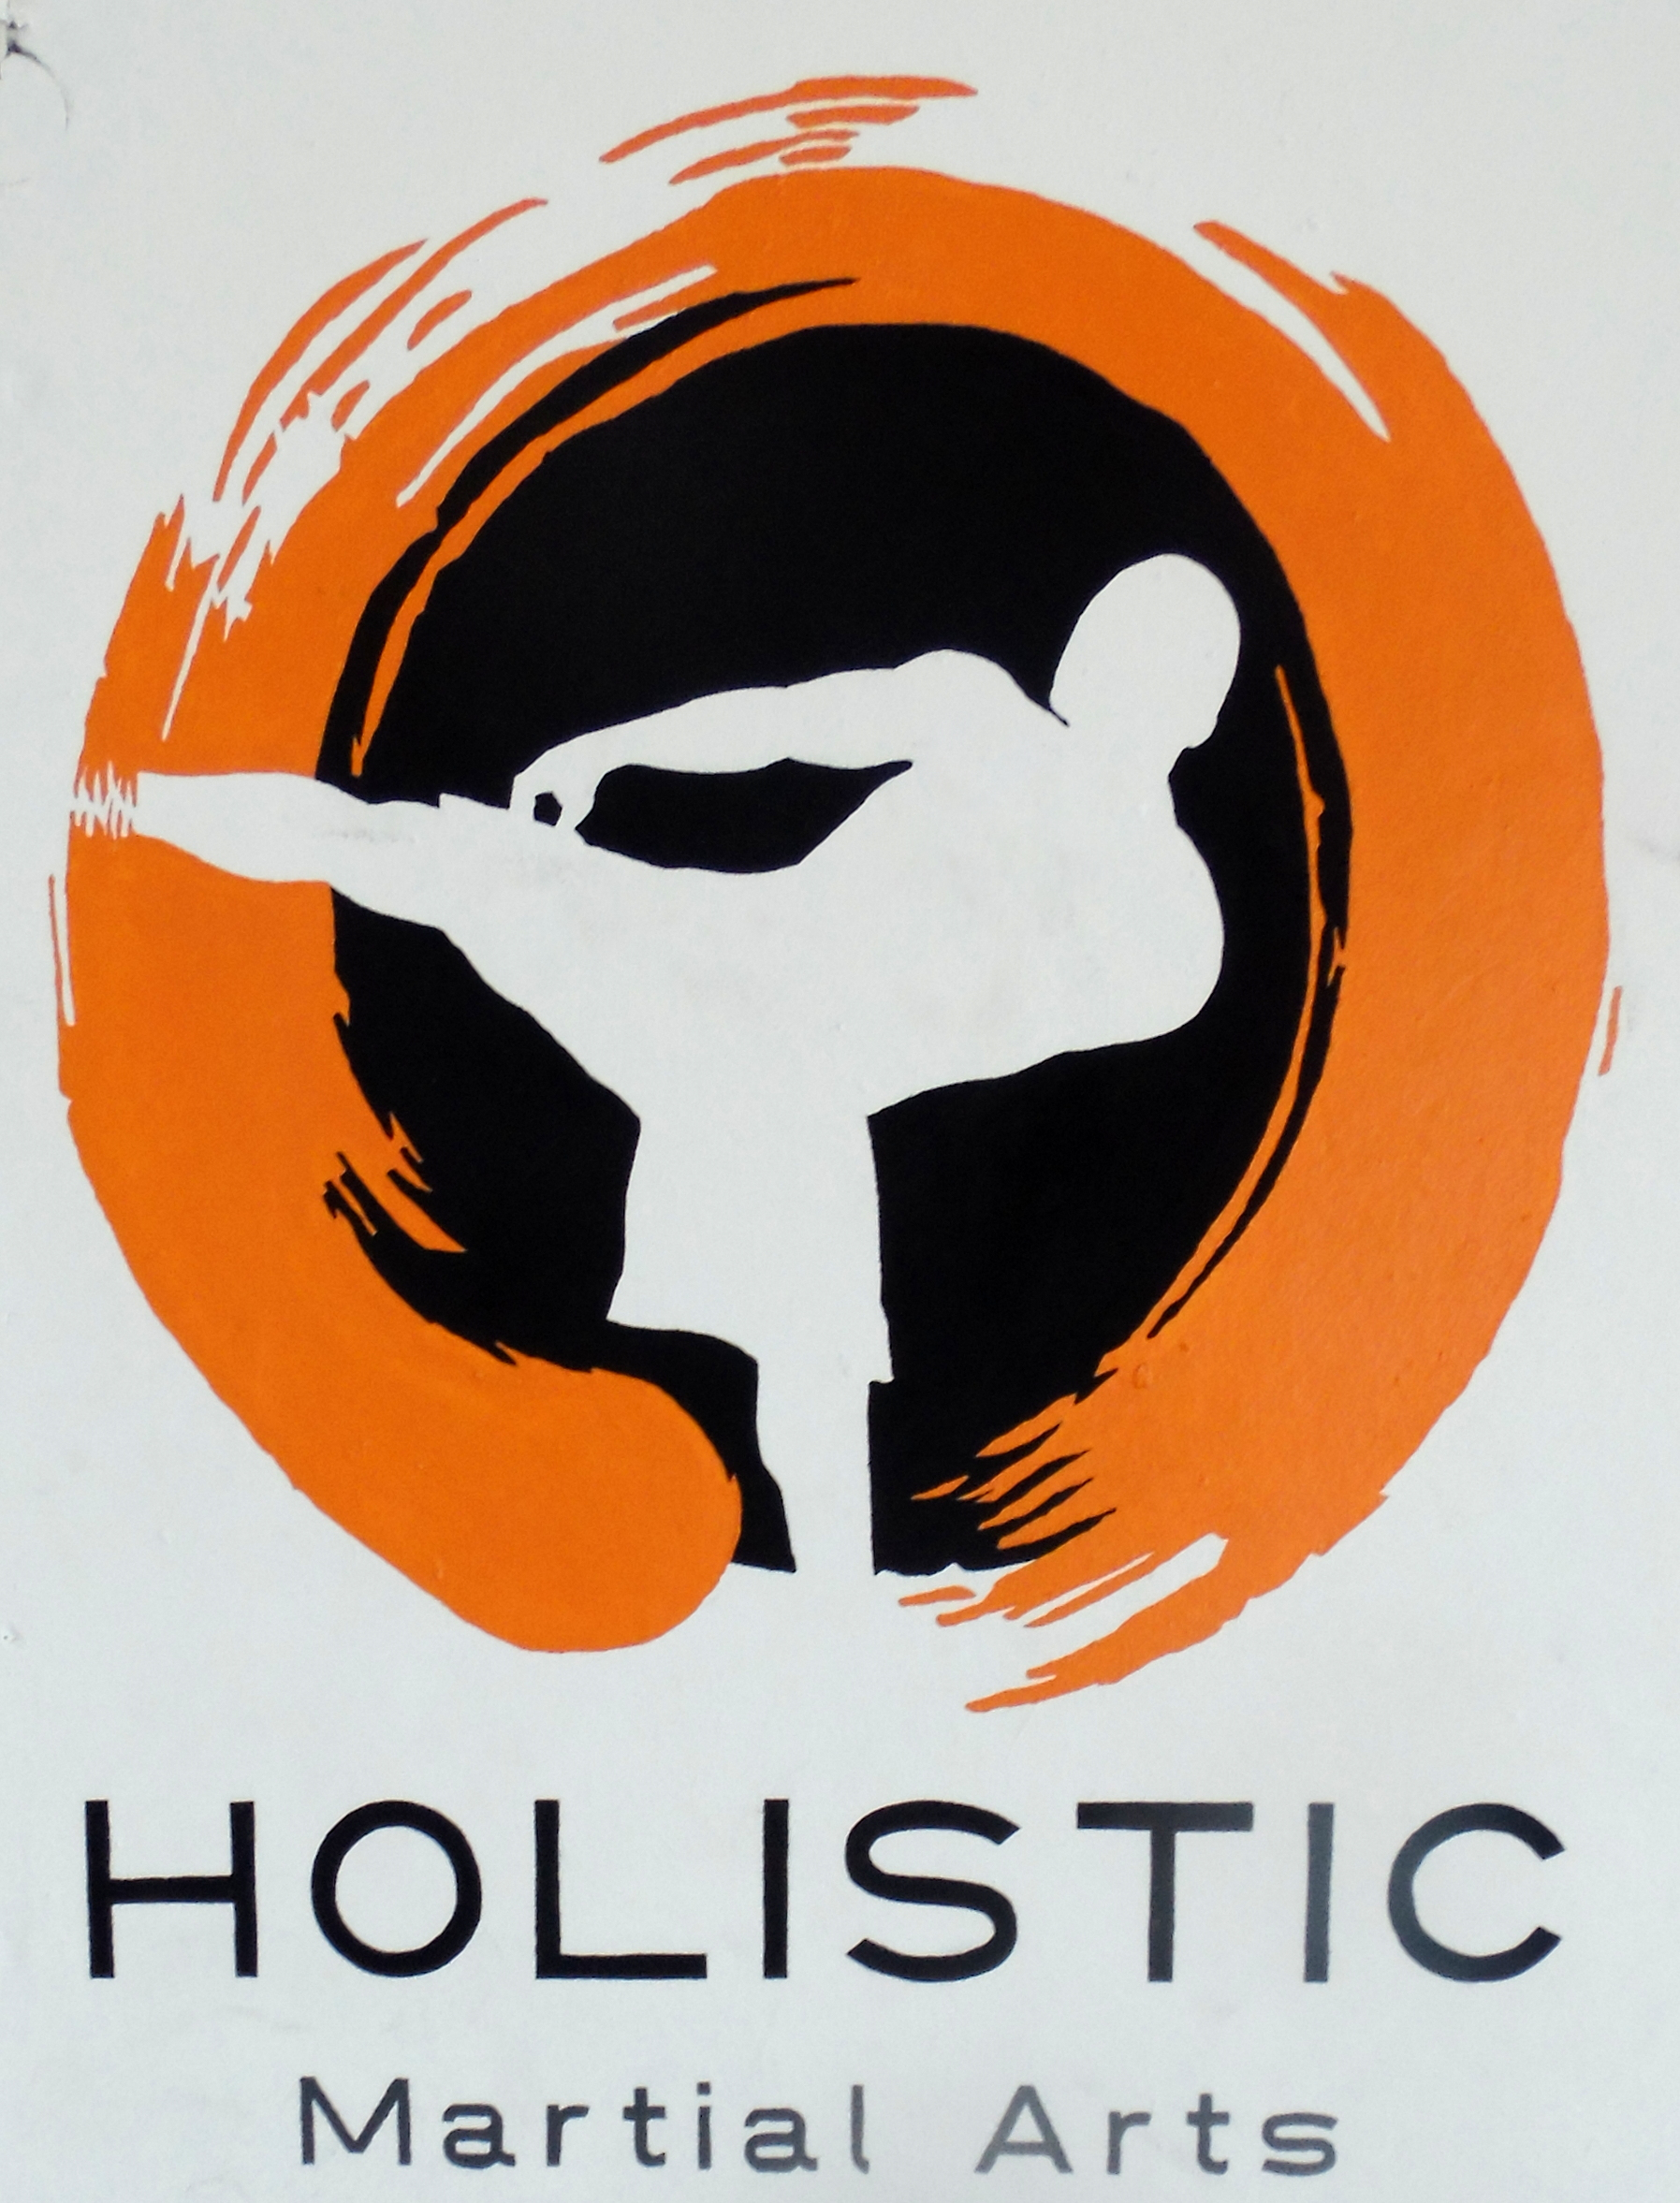 Holistic Martial Arts